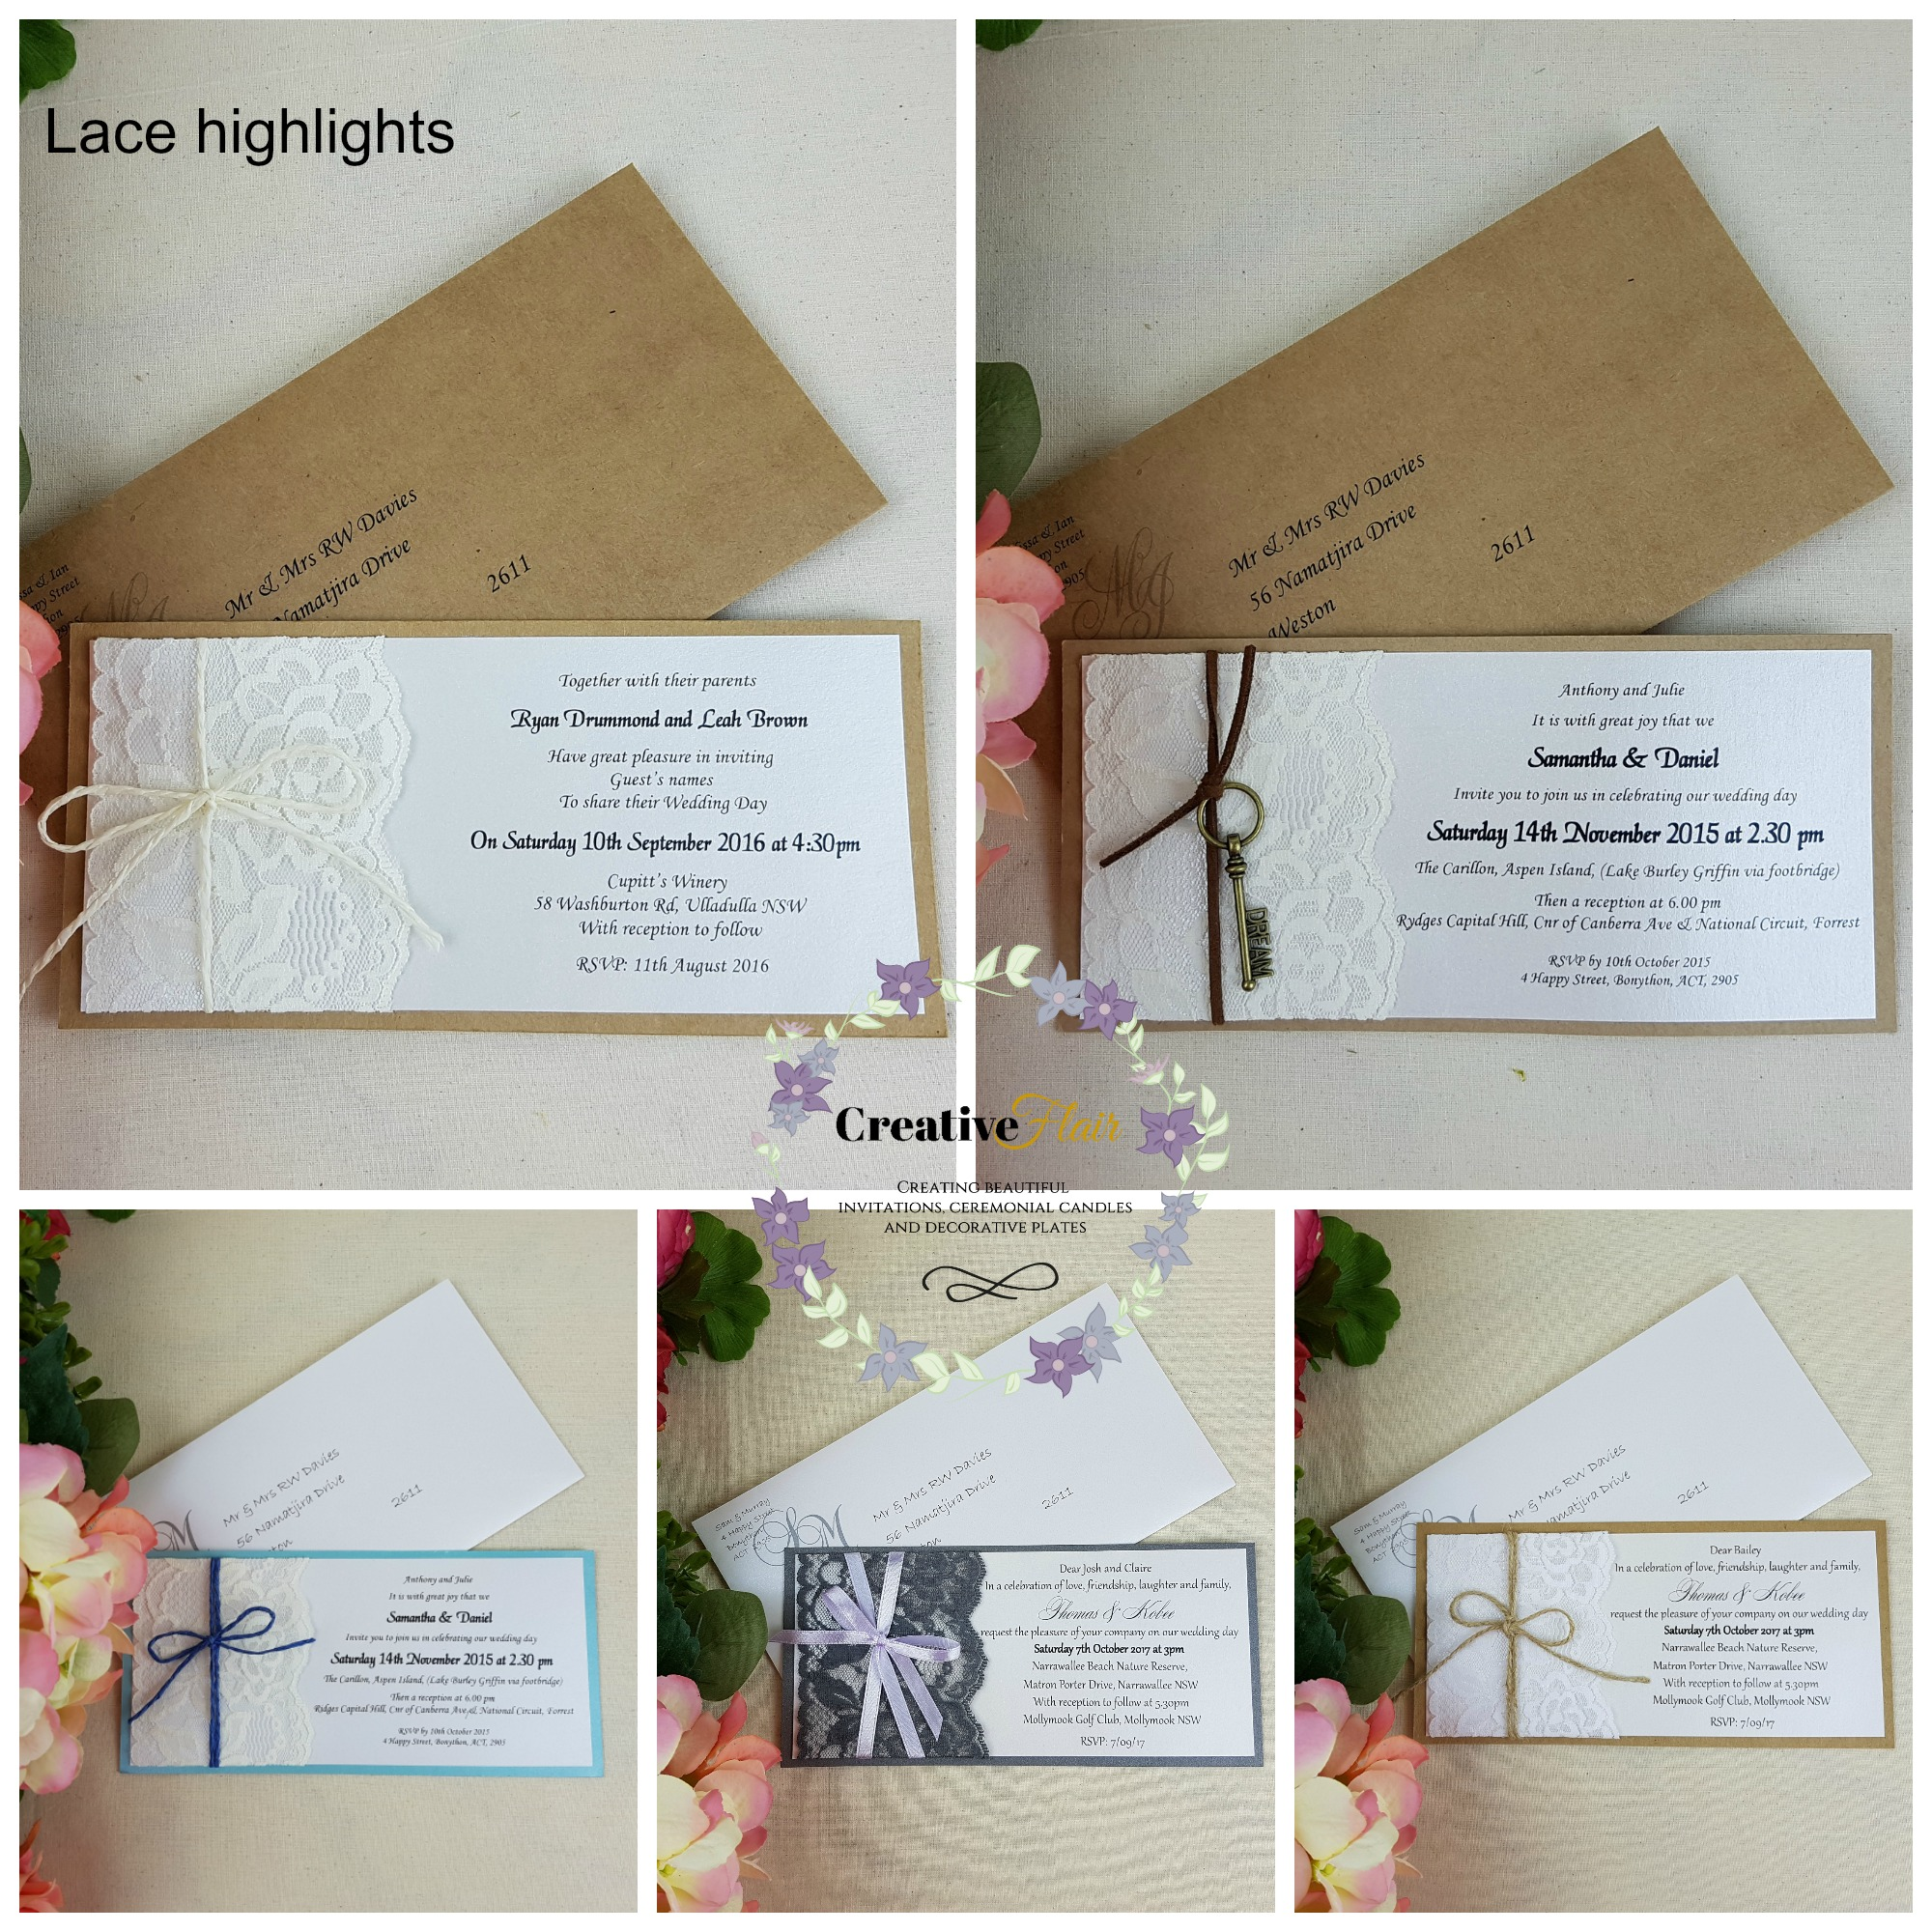 Creative Flair Wedding Invitations Stationery 4 Western Hill